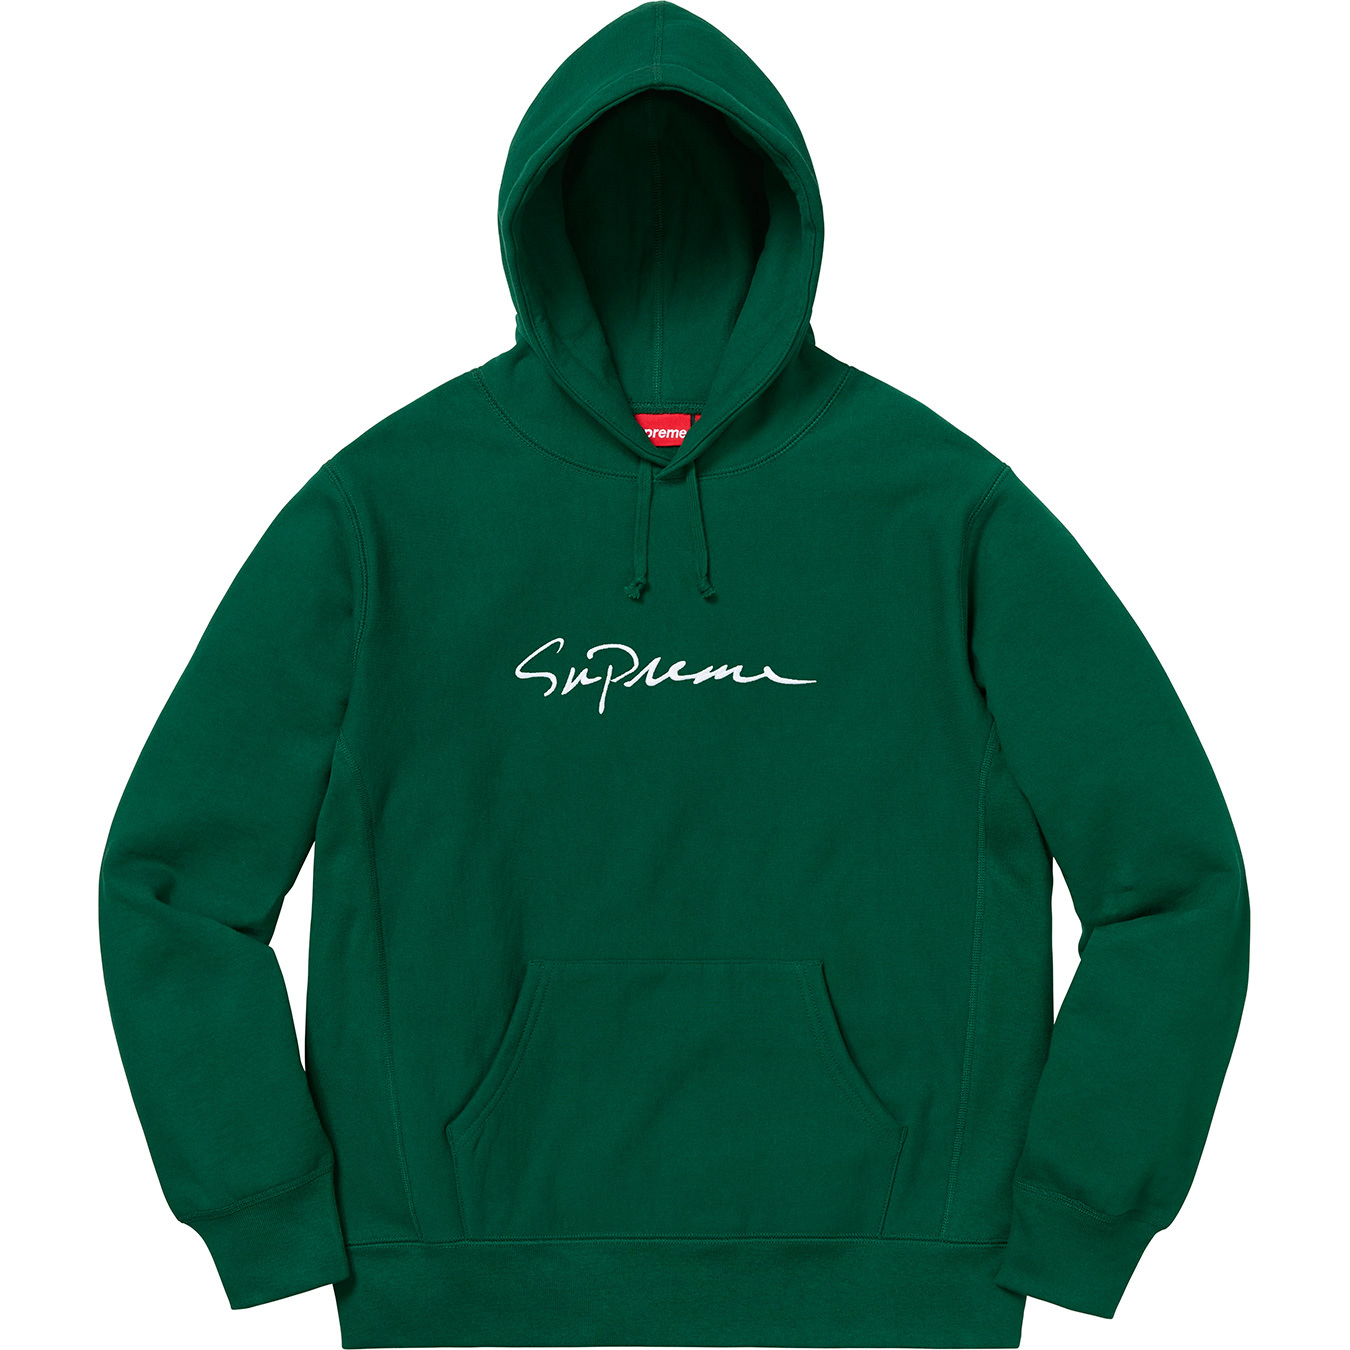 2c0fad84 Supreme Classic Script Hooded Sweatshirt Dark Green | Novelship: Buy and  Sell Sneakers, Streetwear, 100% Authentic